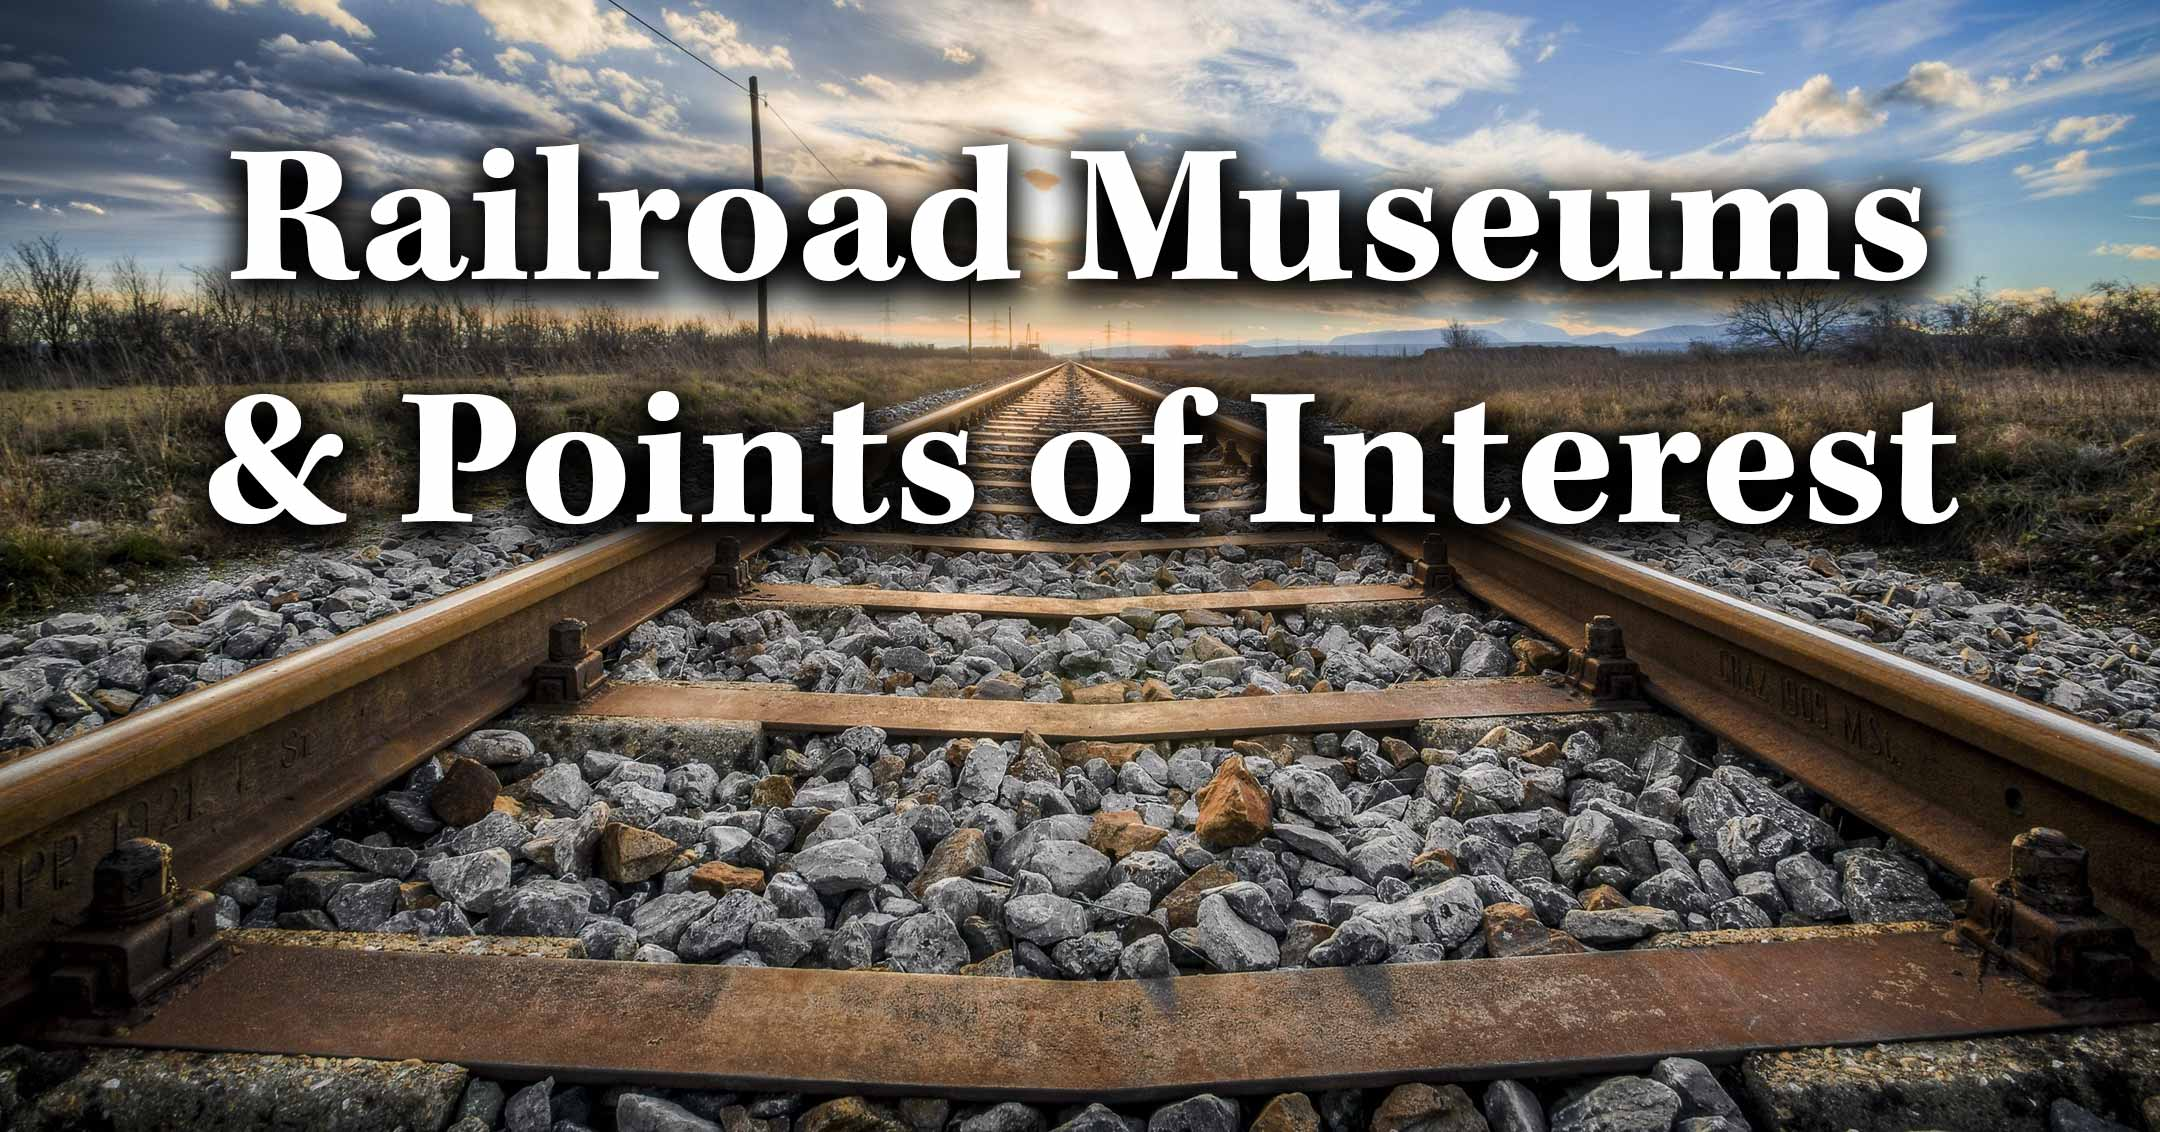 Railroad Museums & Points of Interest | RailroadFans.com